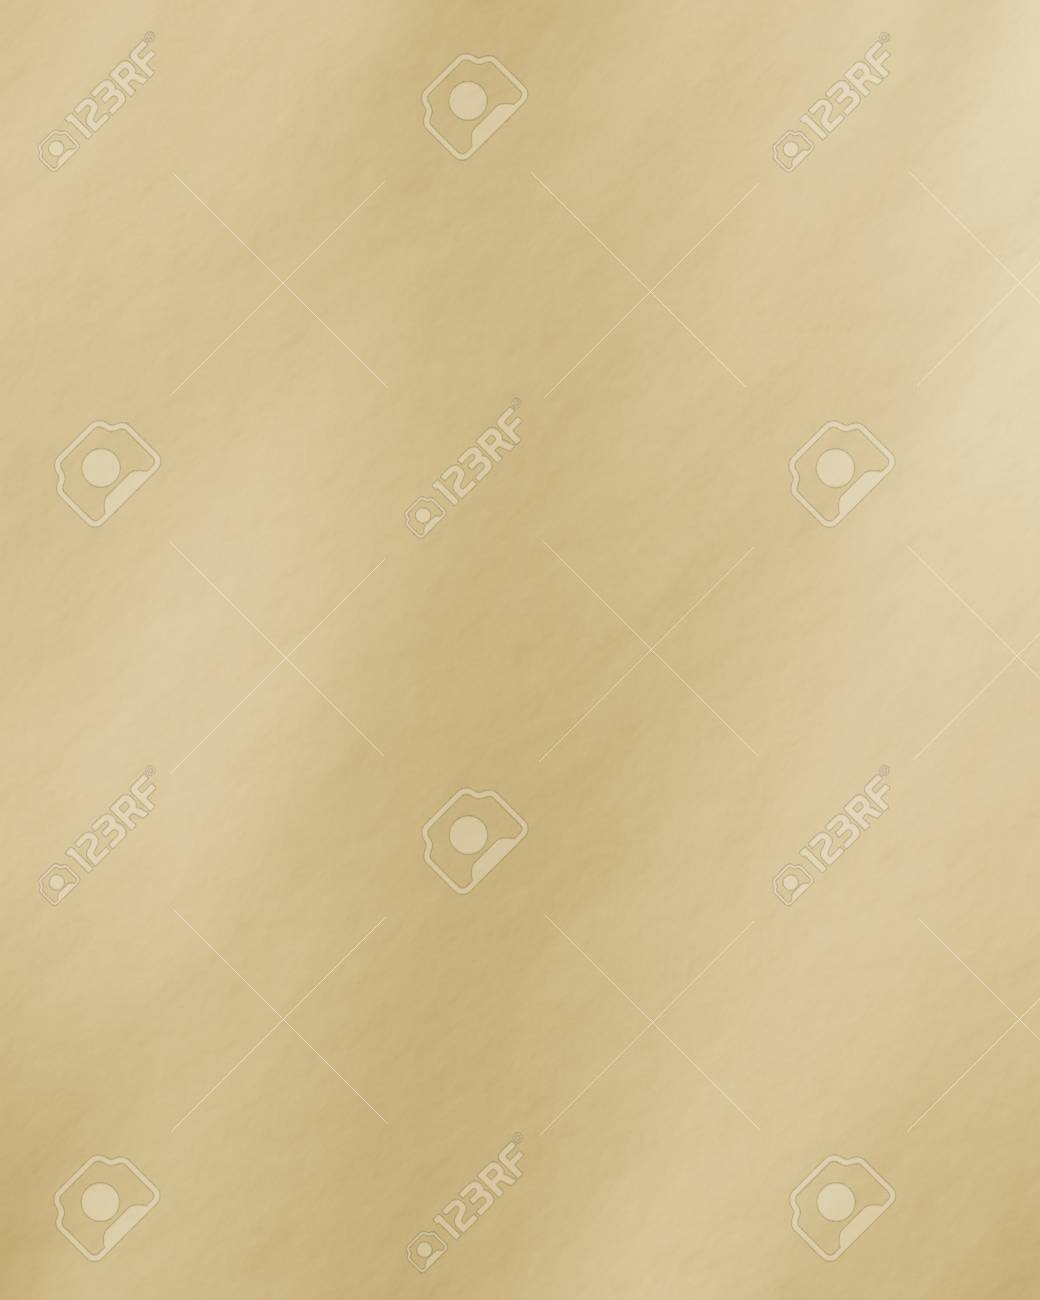 Old paper texture with spots, stains and soft folds Stock Photo - 14776331